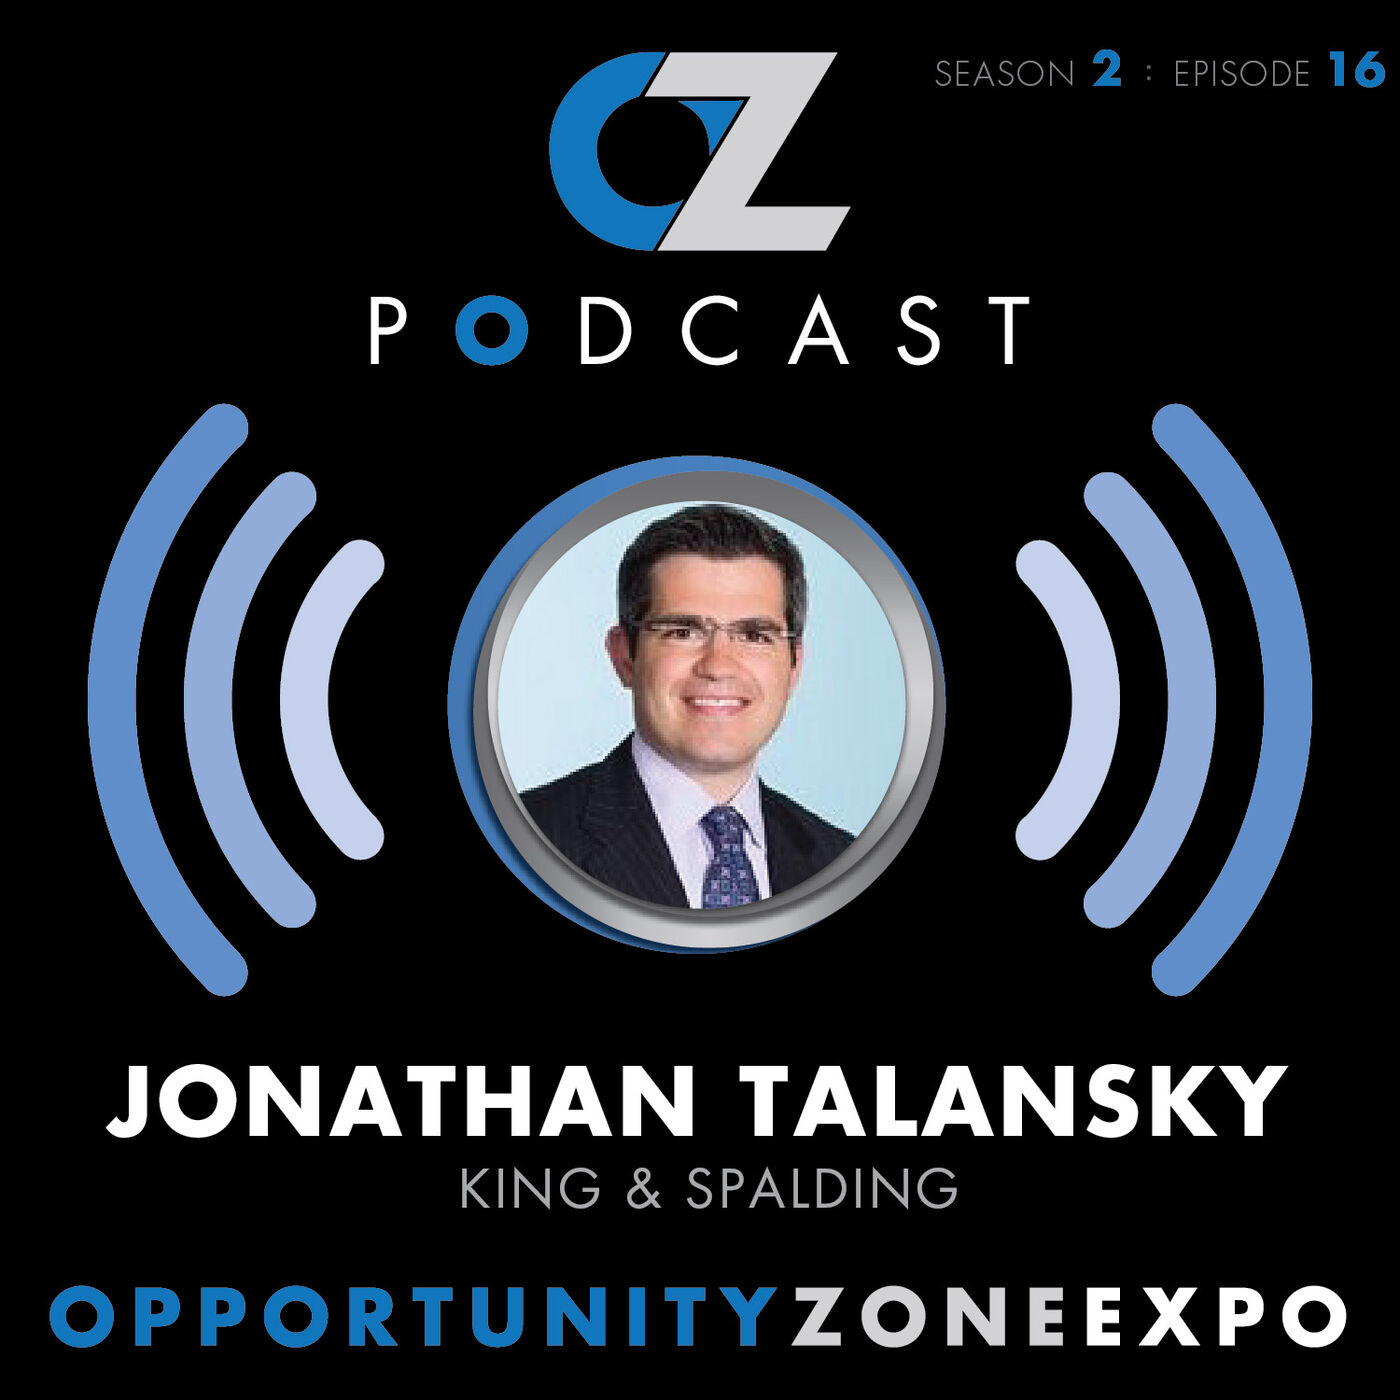 """Jonathan Talansky - This """"Two-Handed Lawyer"""" Who Gets the Joke"""